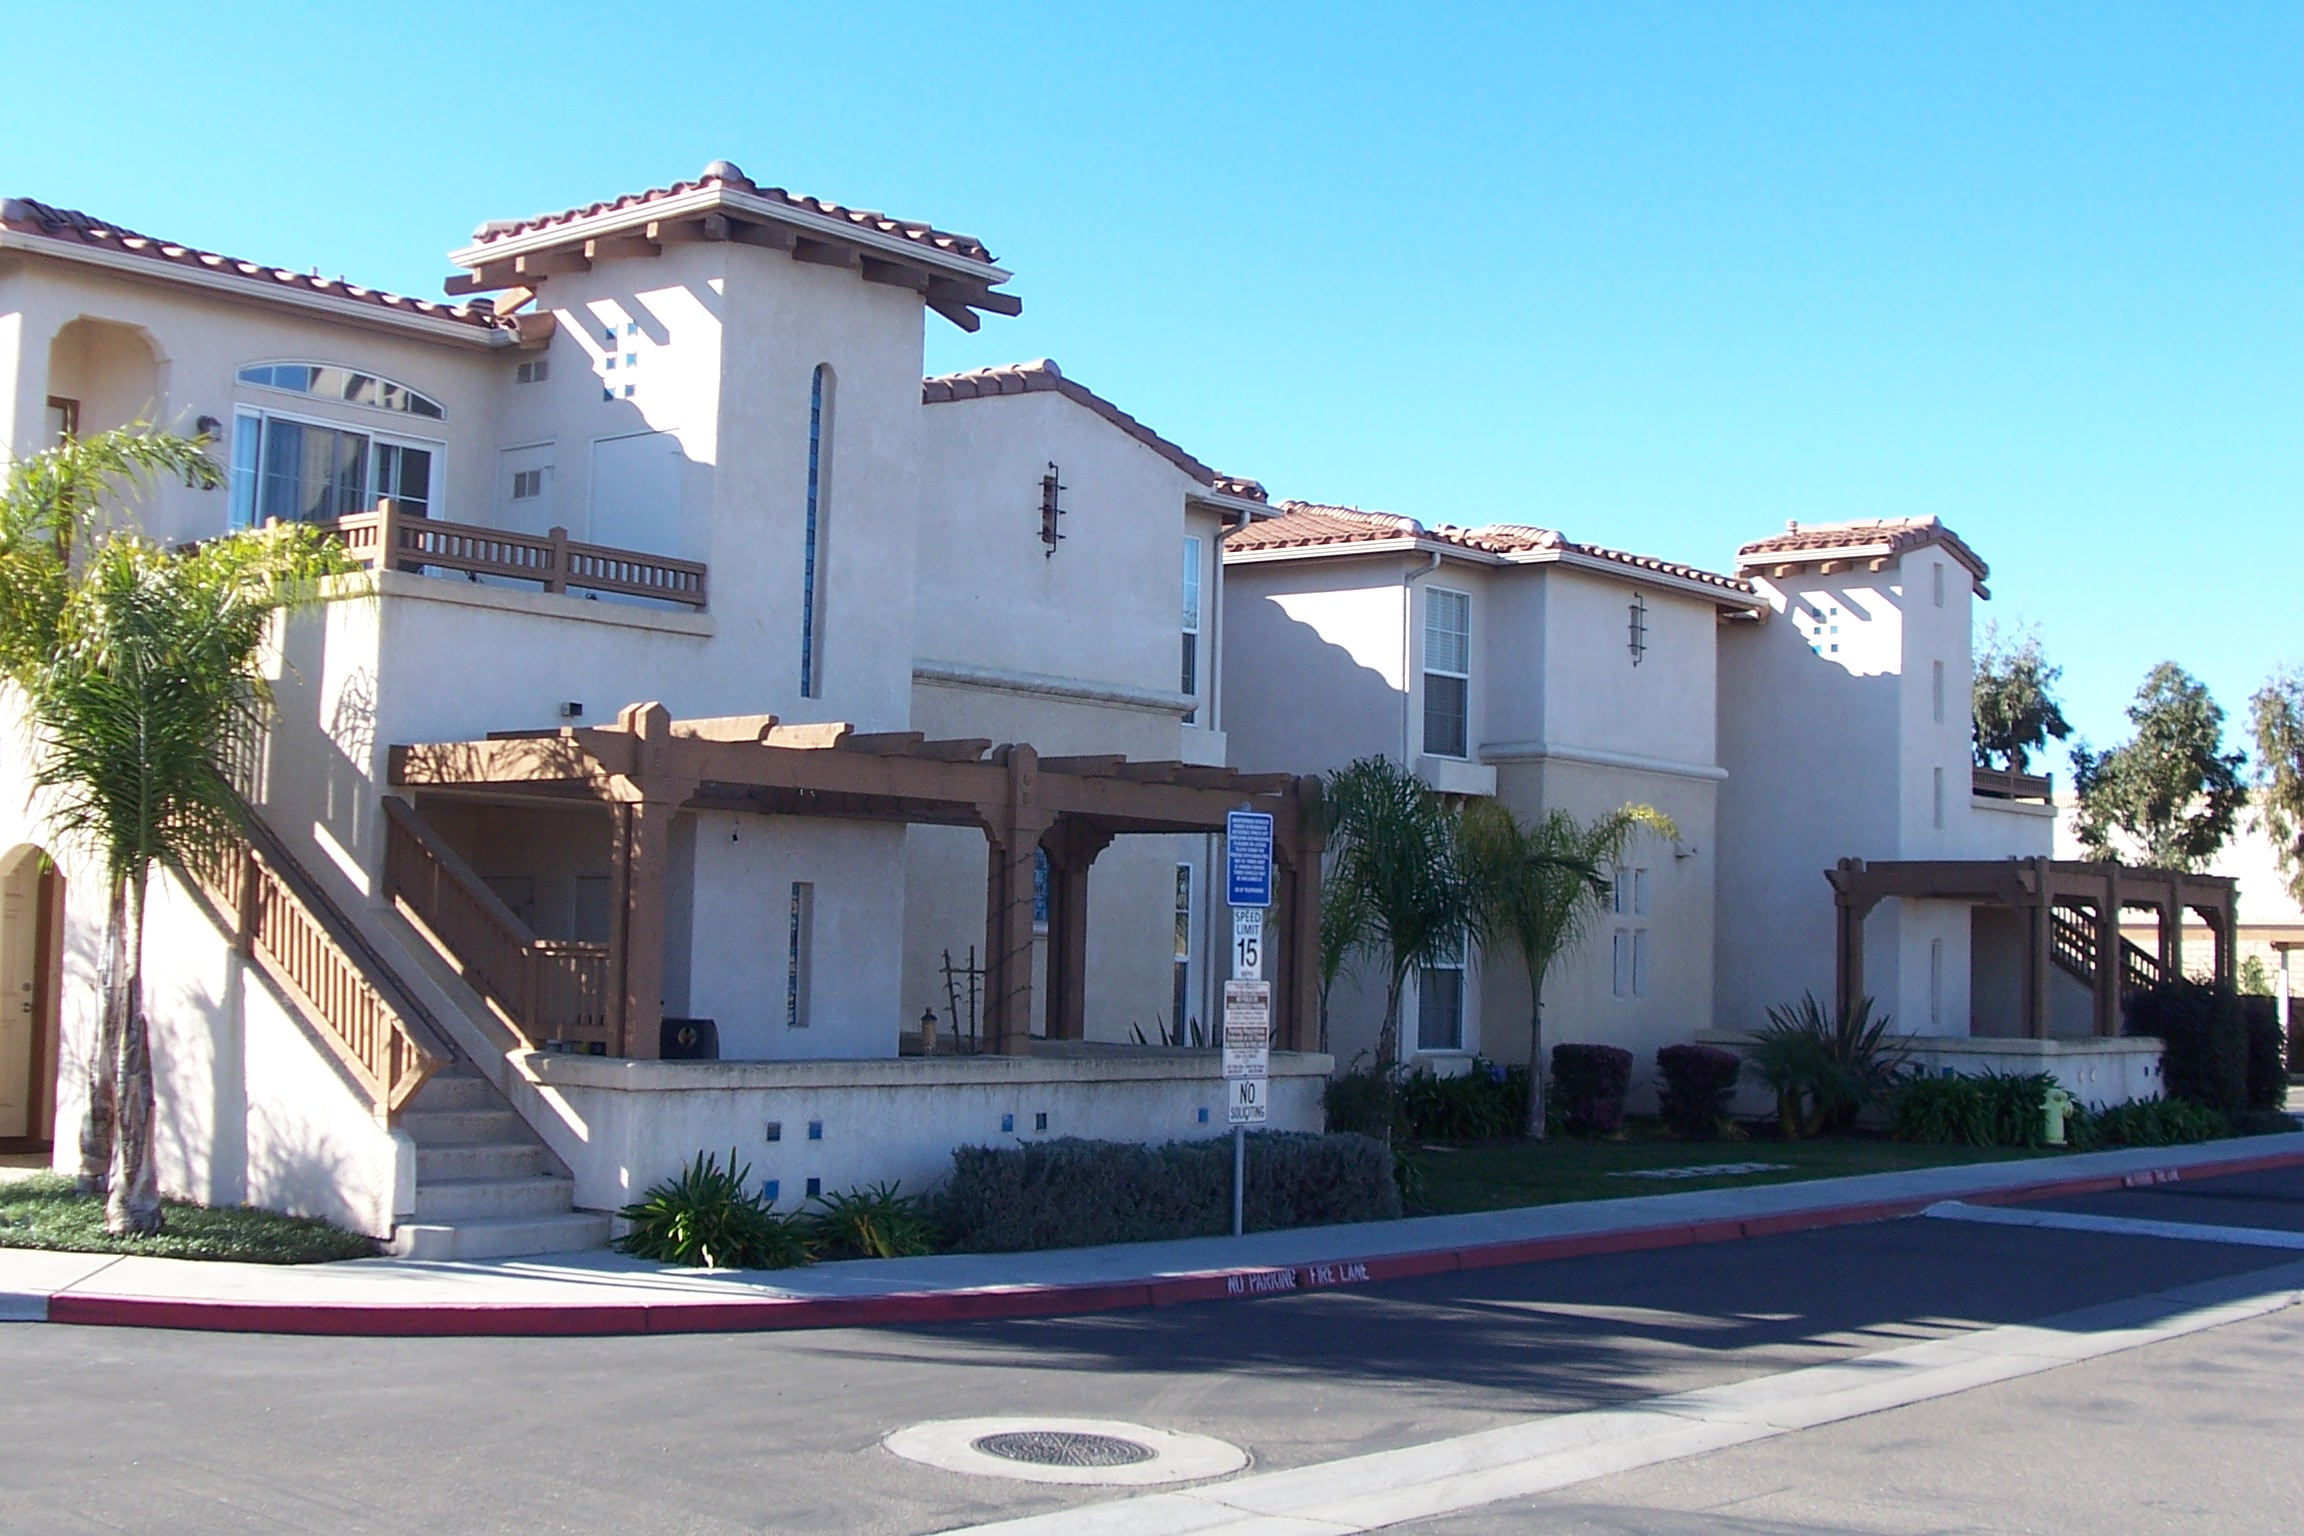 mission creek village condos vs oak creek villas santa maria ca